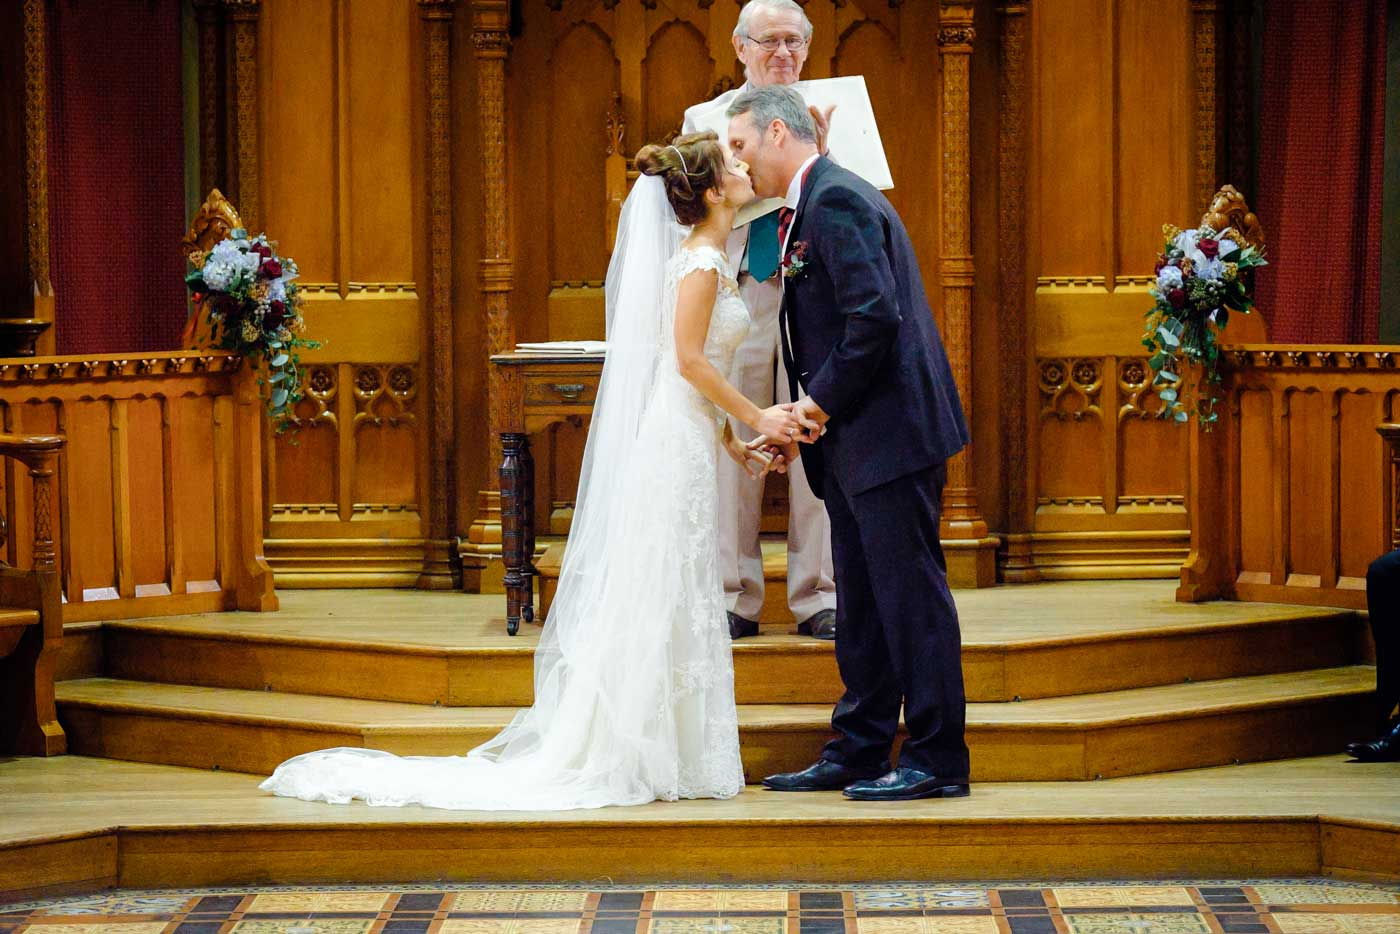 Groom and bride kissing after their wedding ceremony at The Callow Great Hall at Stanbrook Abbey by Stanbrook Abbey wedding photographer Clive Blair Photography